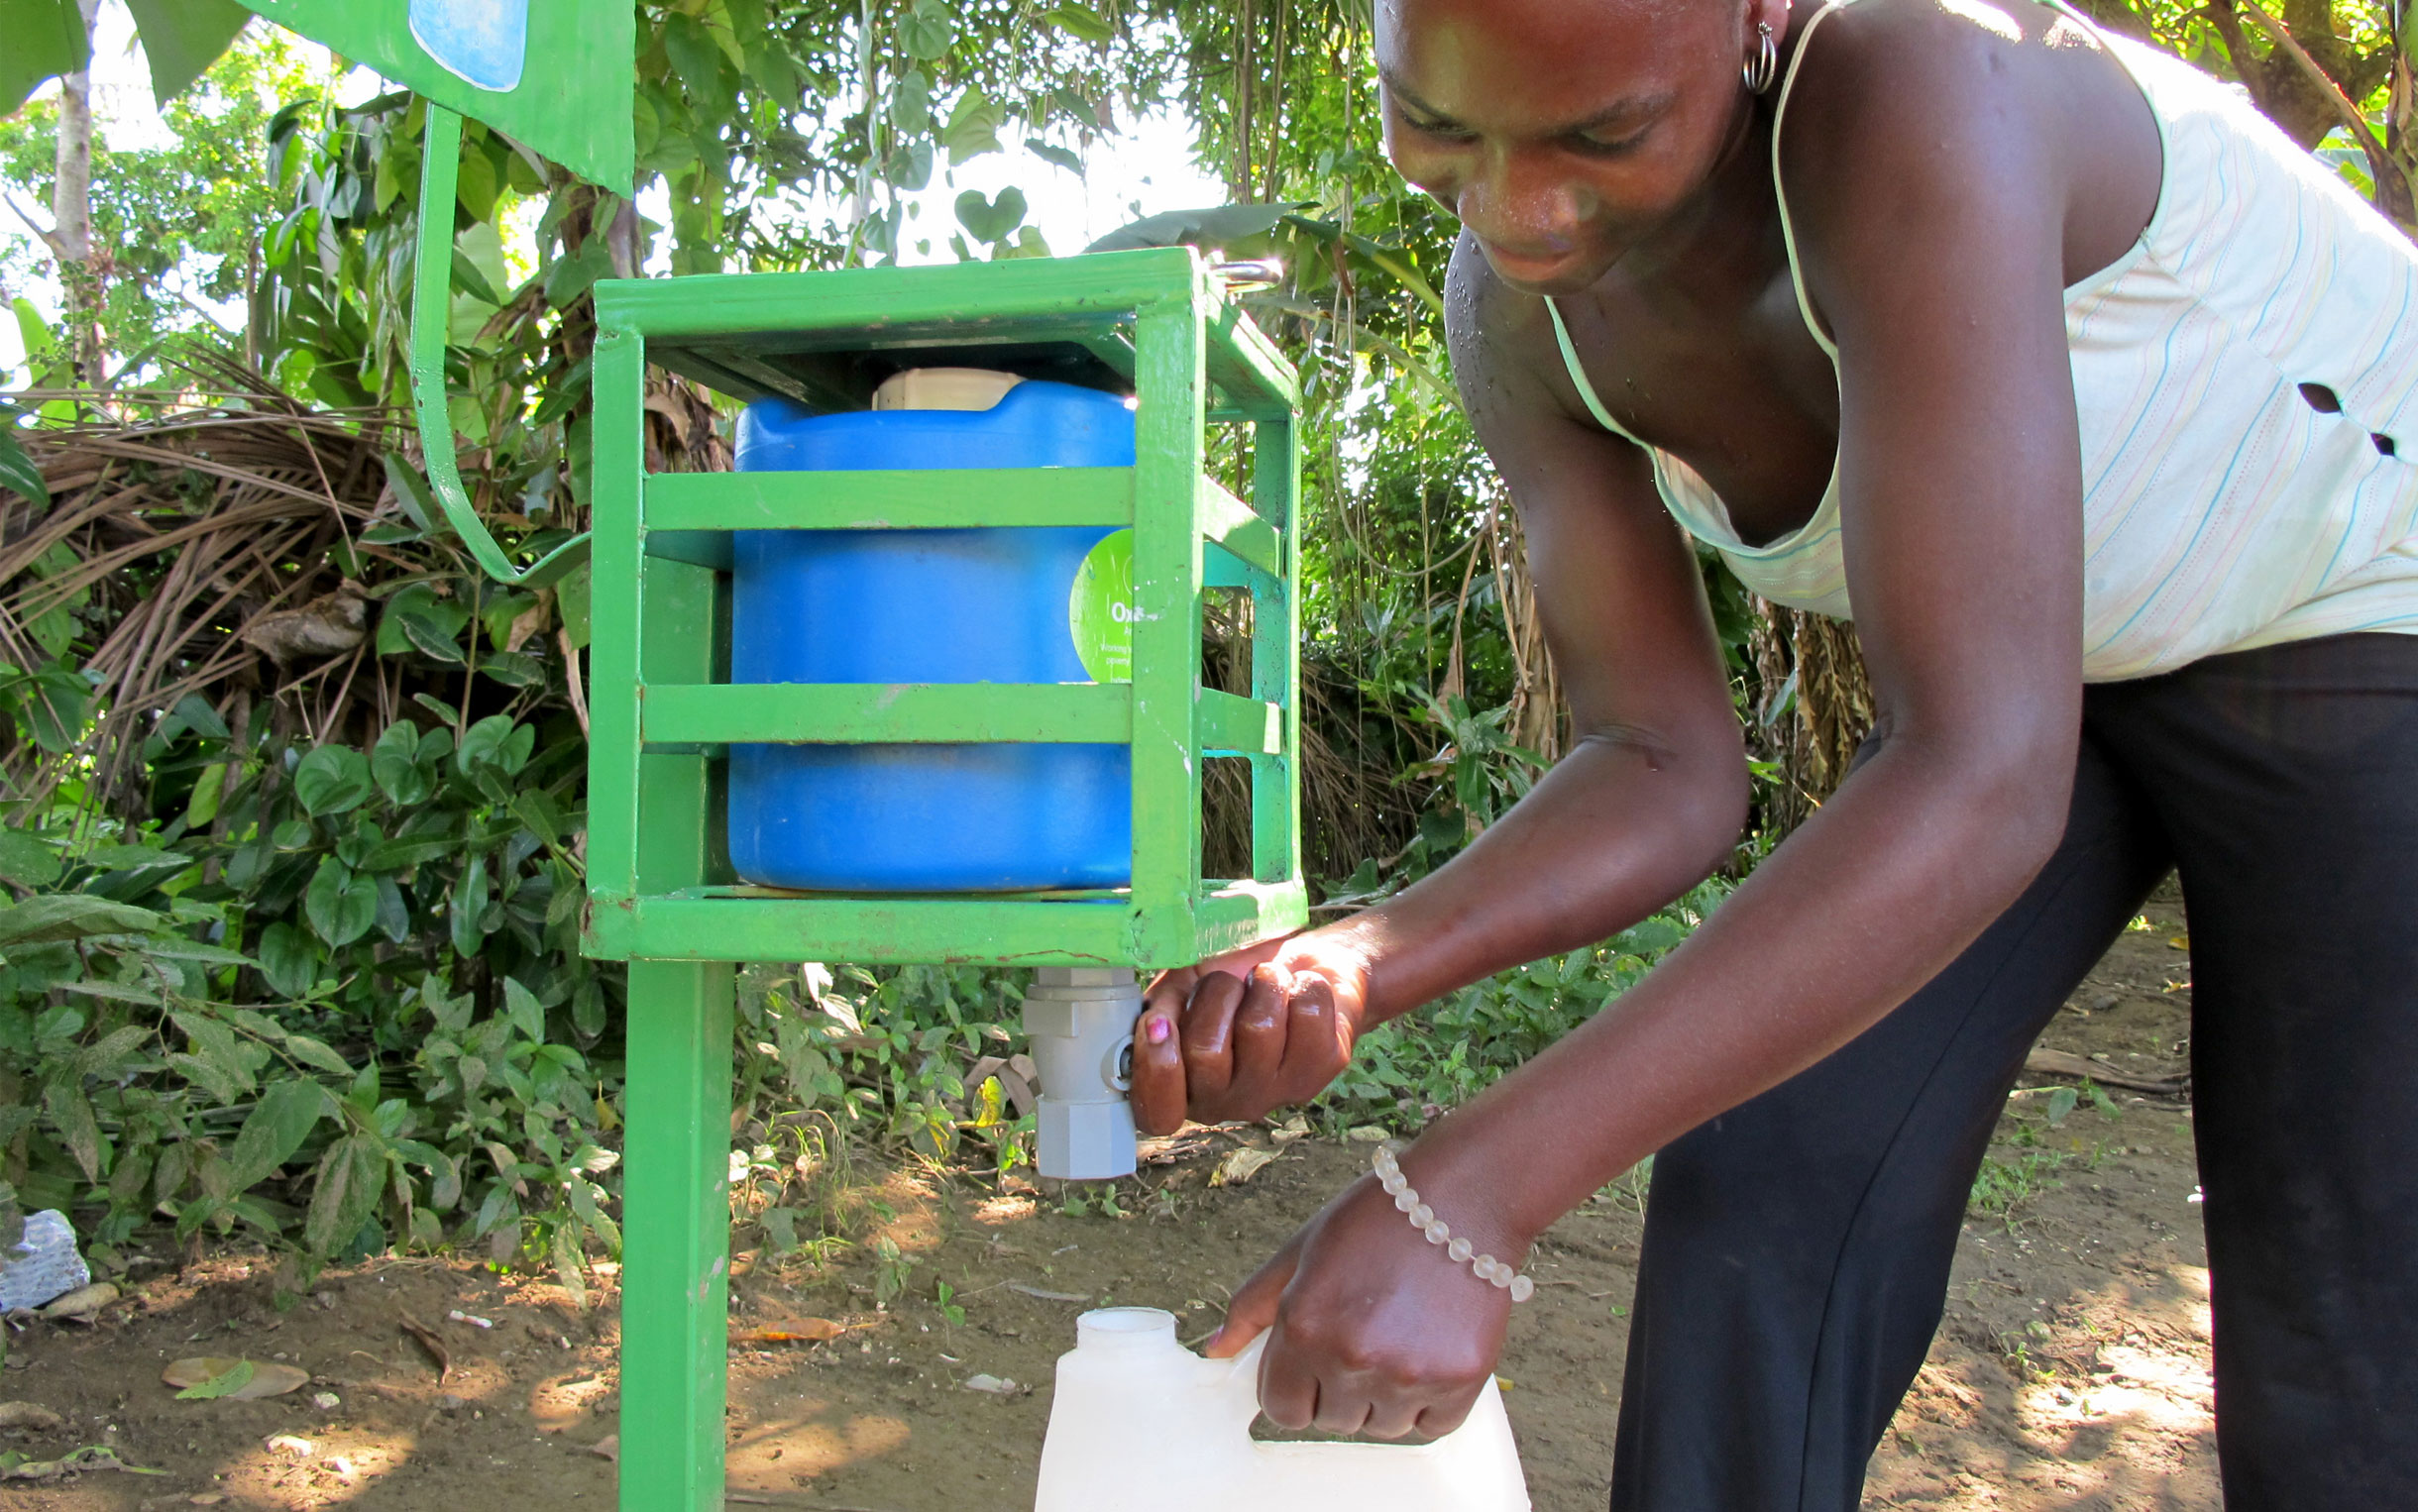 $120 can install 3 water purifiers at village wells